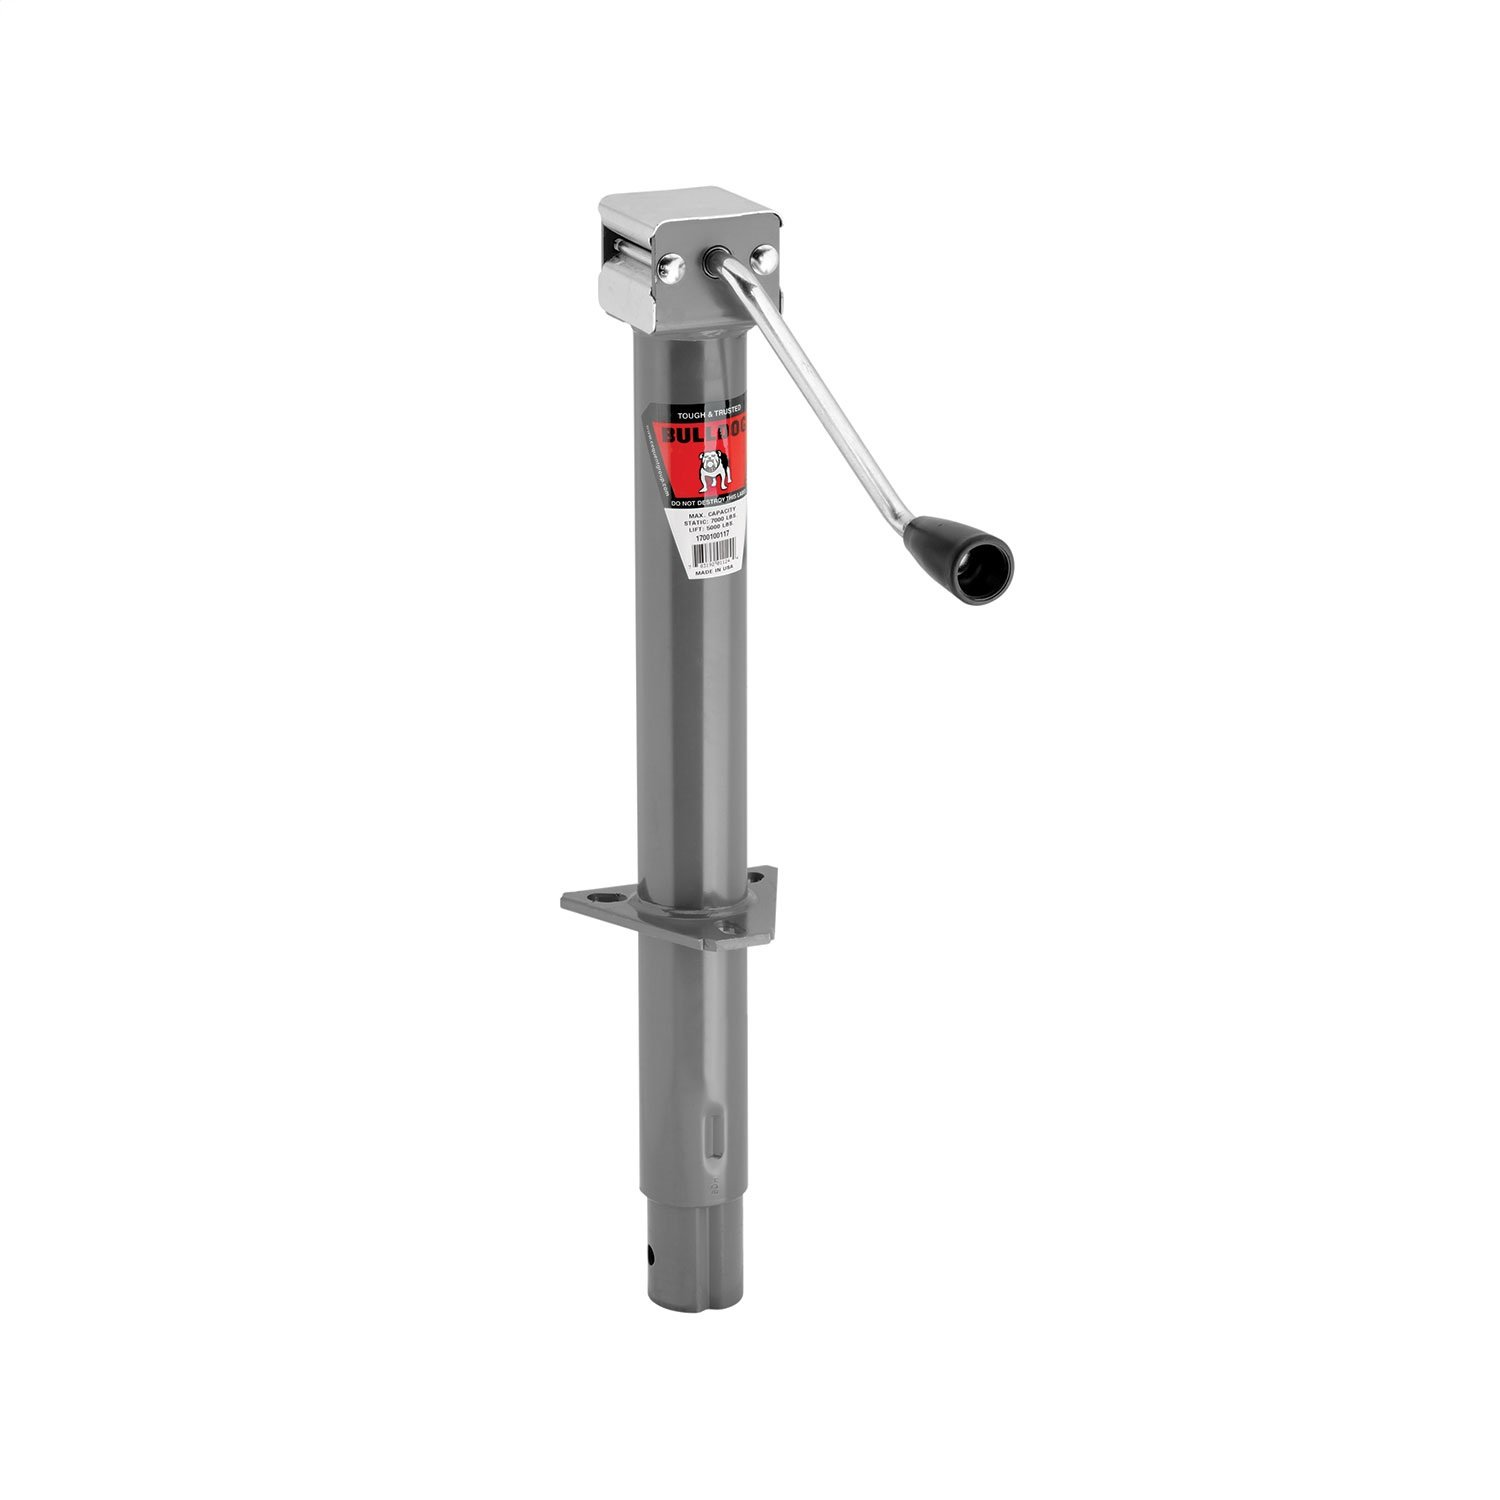 Bulldog 1700100317 A-Frame Trailer Jack by Bulldog